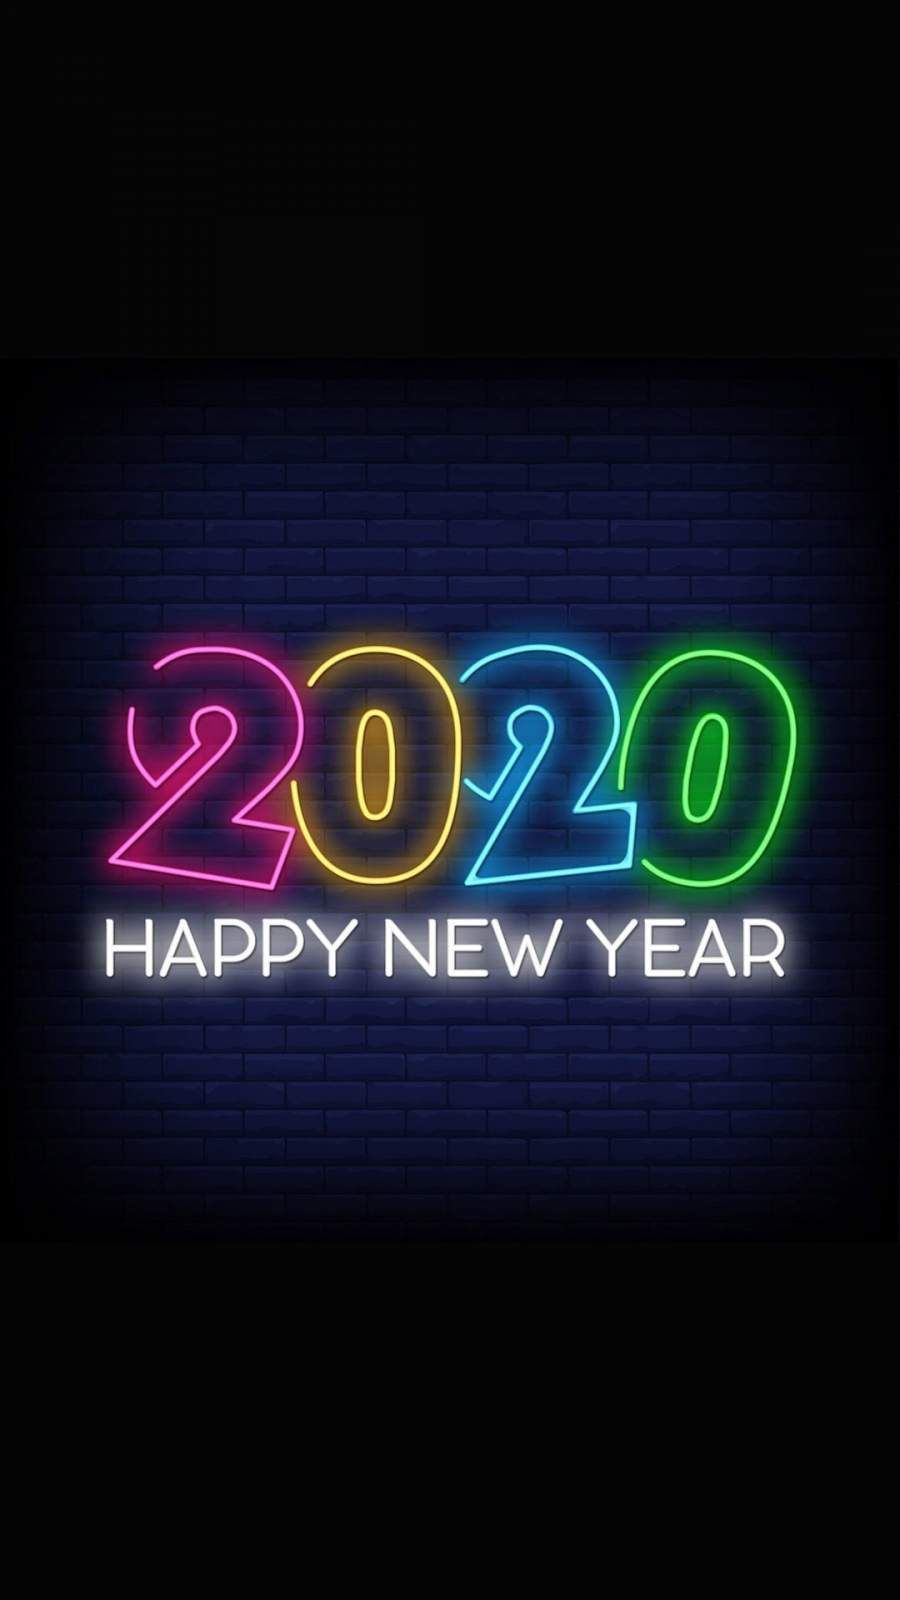 Iphone Wallpapers For Iphone 8 Iphone 8 Plus Iphone 6s Iphone 6s Plus Iphone X And Ipod Touch Hi Happy New Year Wallpaper New Year Wallpaper Happy New Year